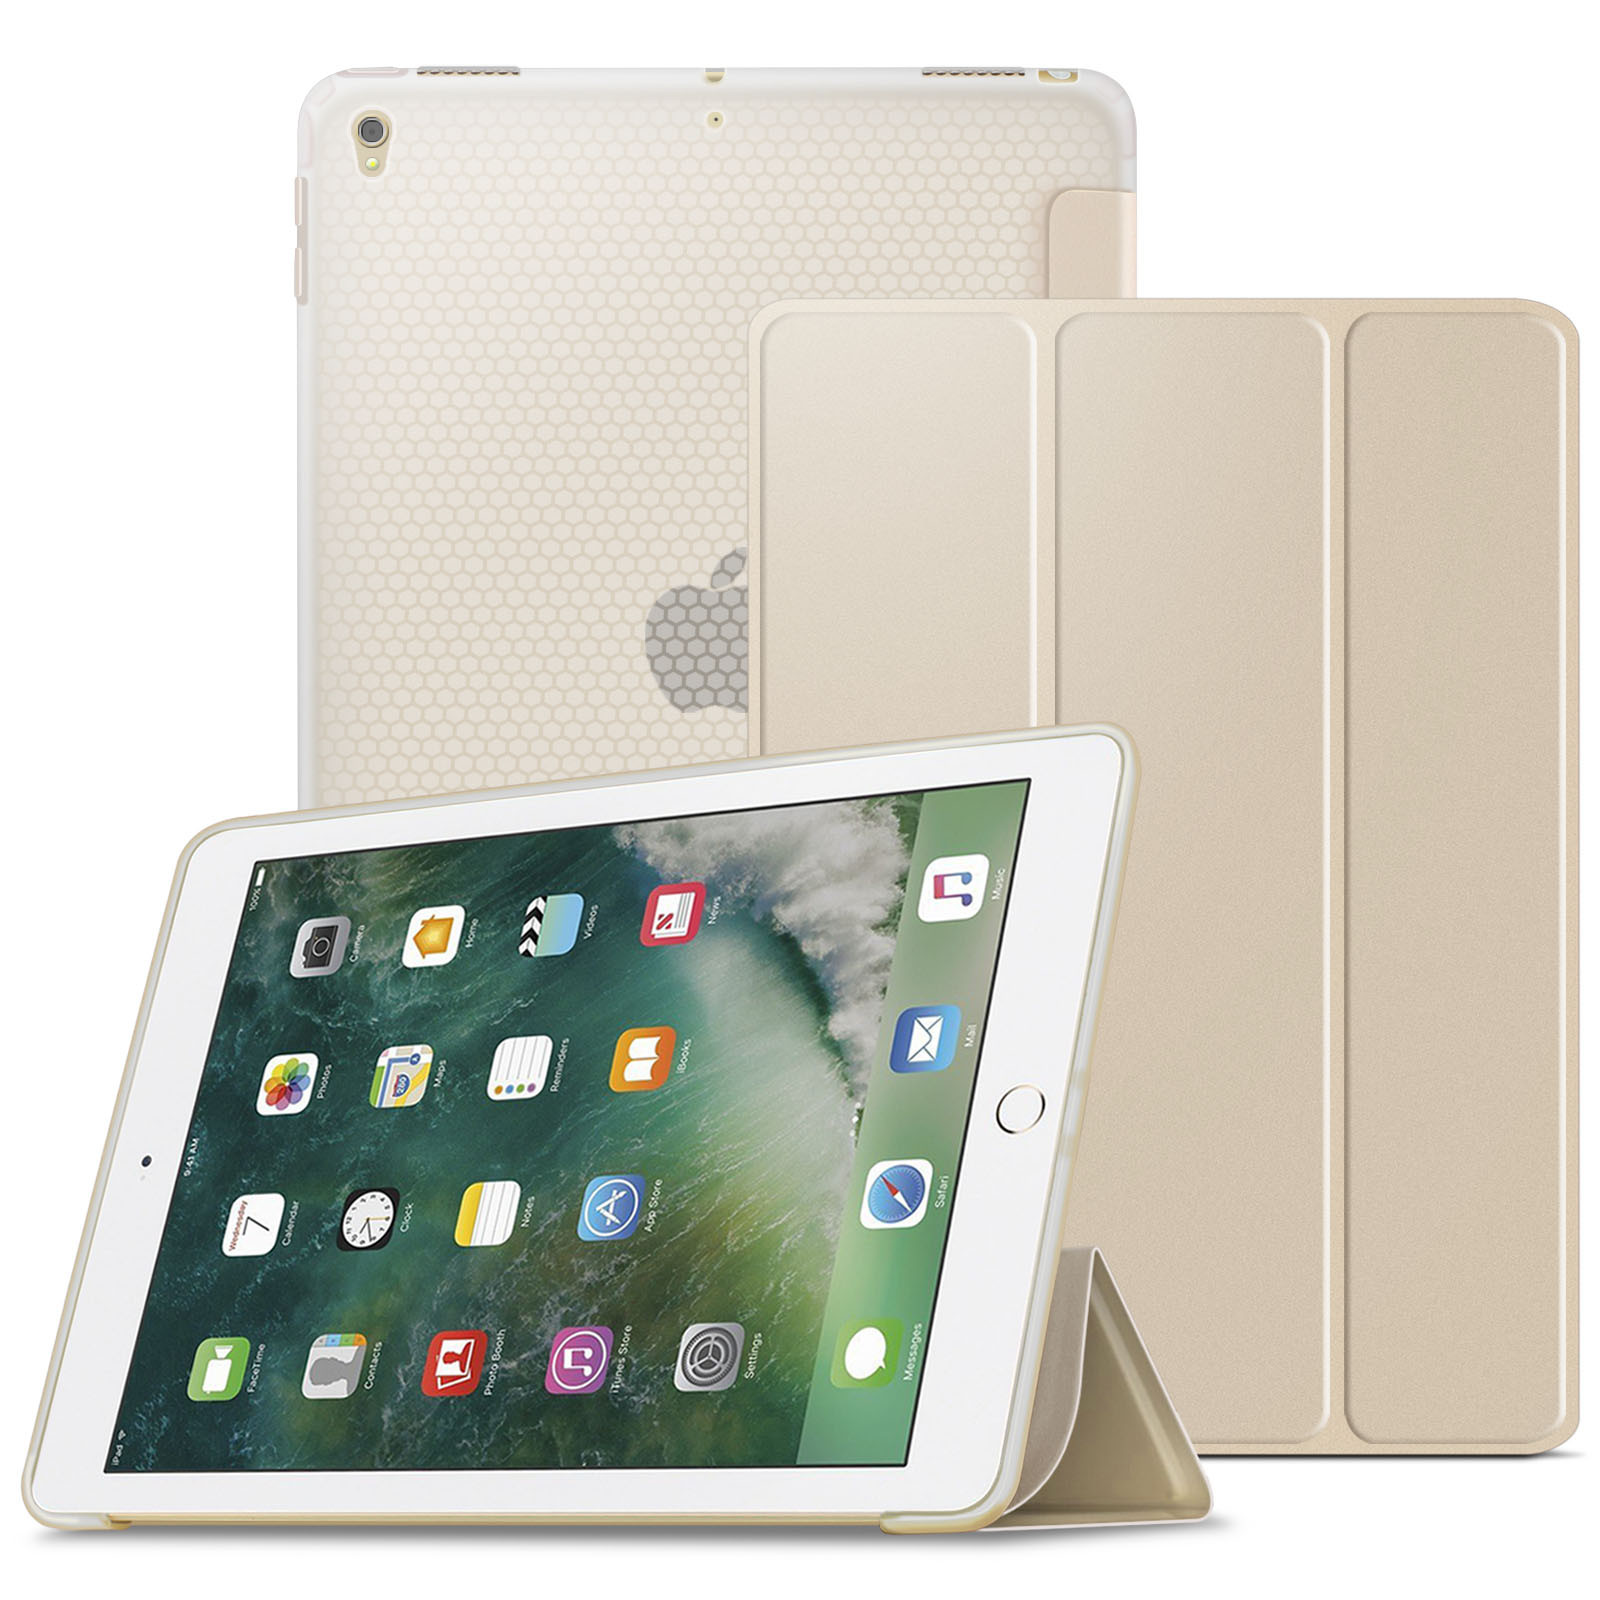 Infiland iPad Pro 10.5 Case - Slim Smart Cover with Soft TPU Bumper Edge Corner and